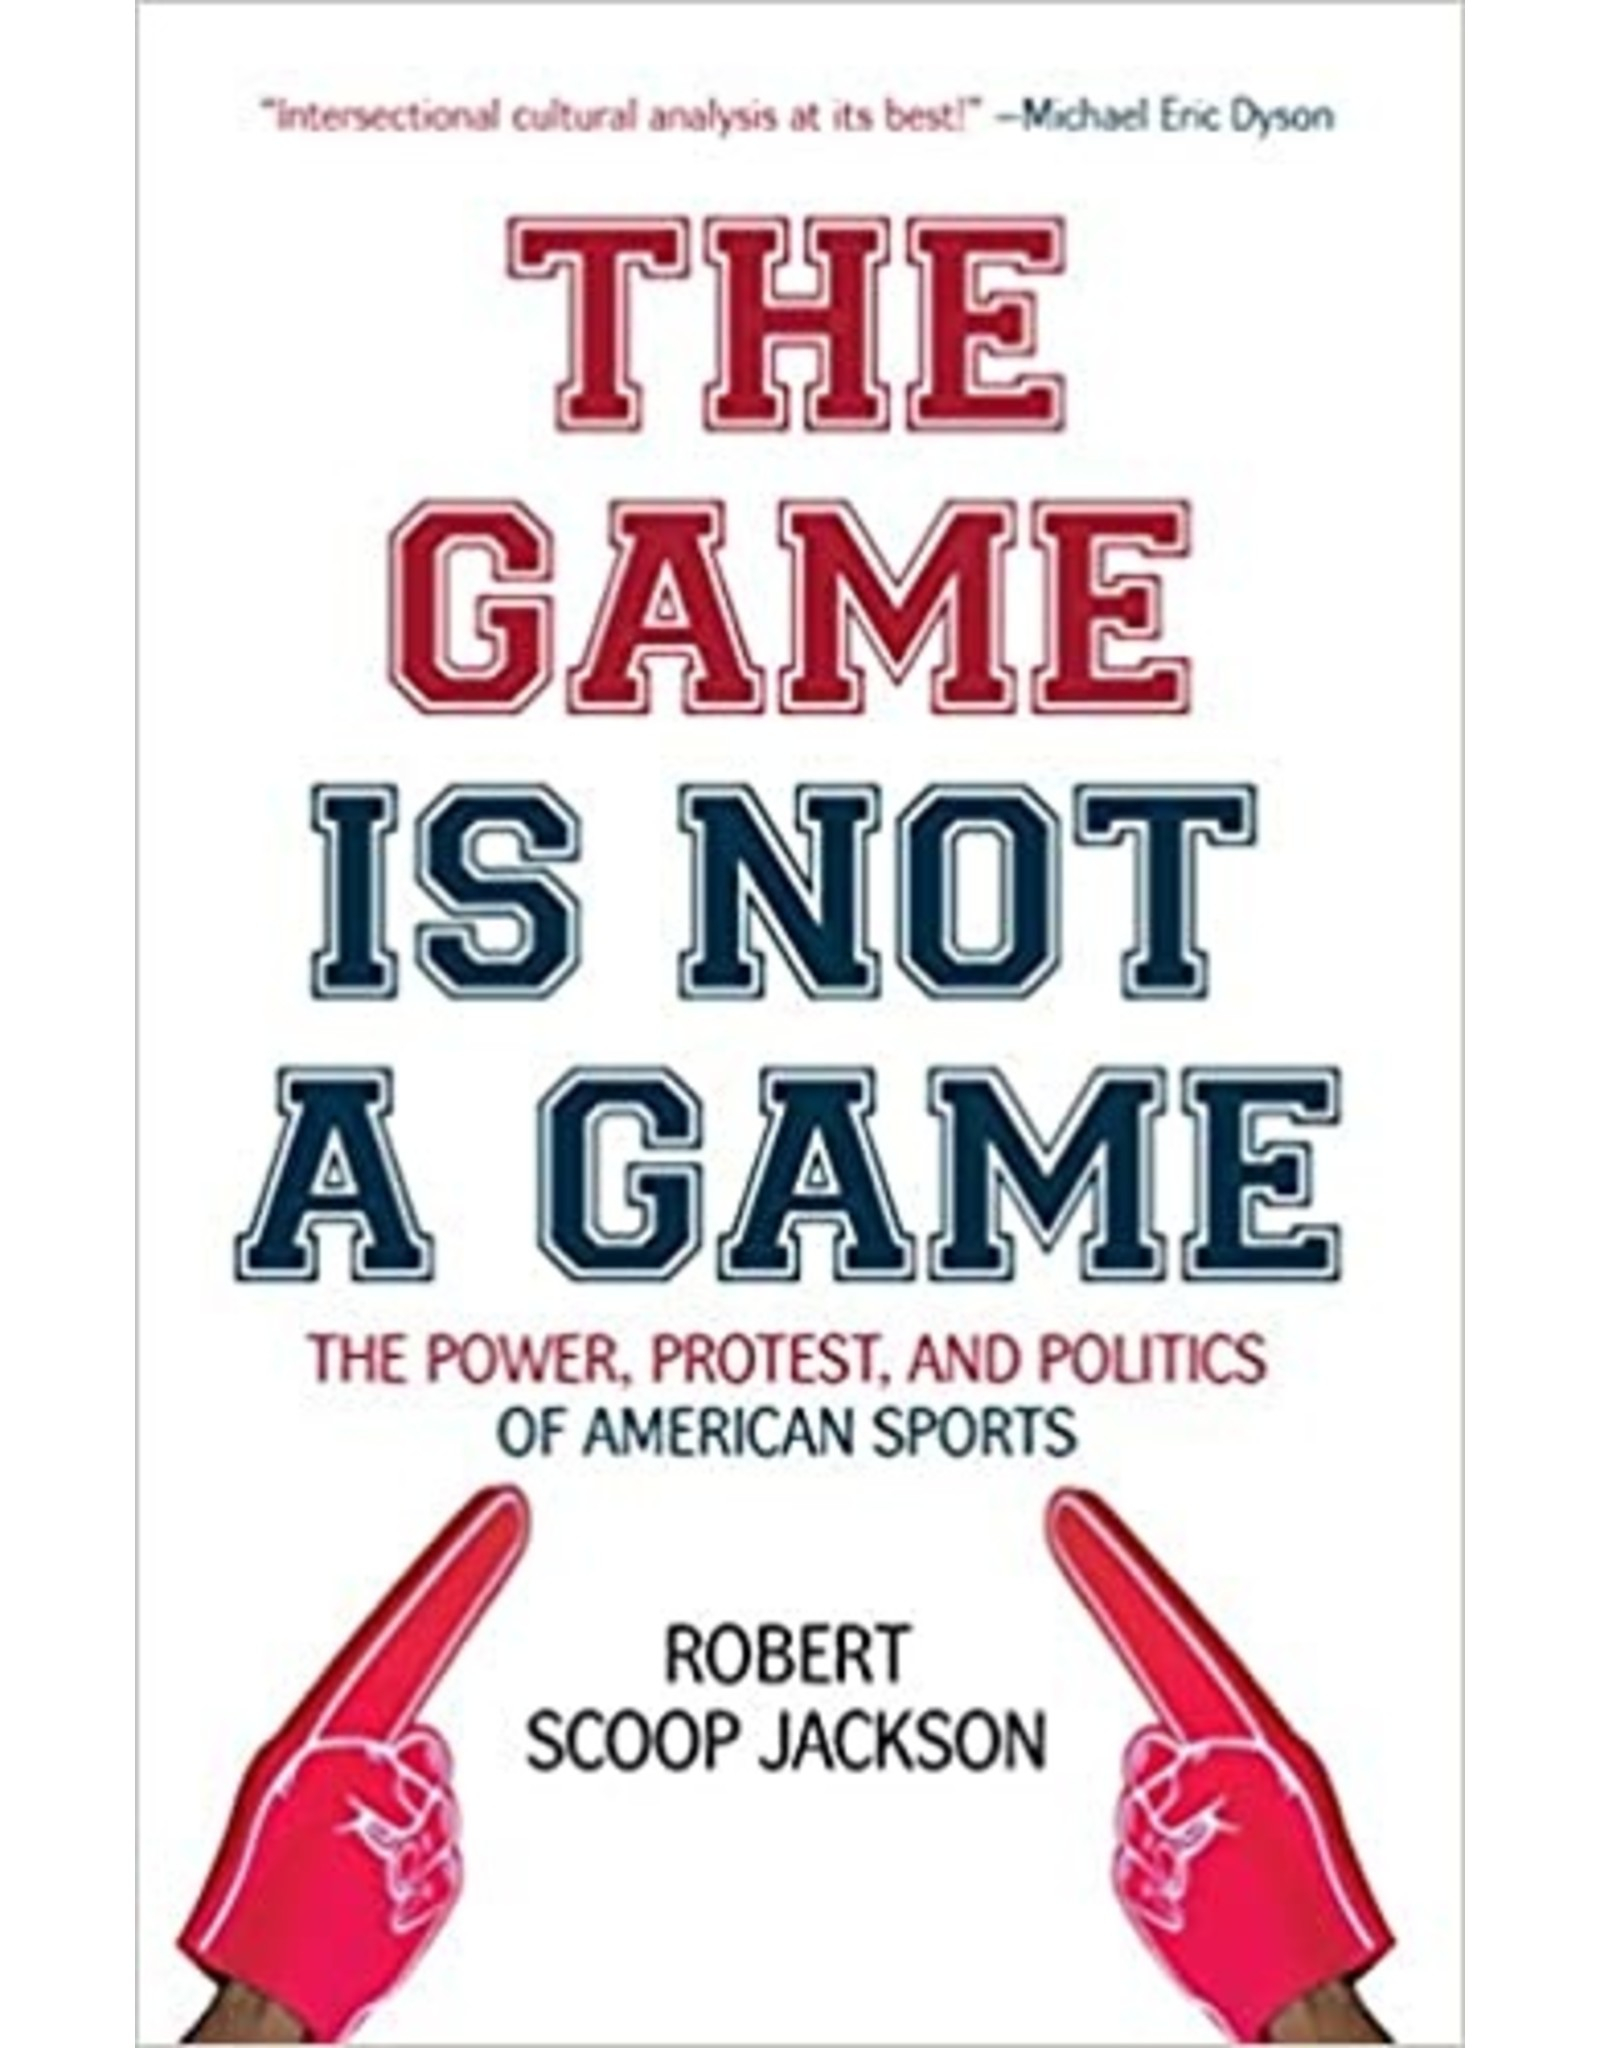 Books The Game is Not A Game: The Power, Protest, and Politics of American Sports by Robert Scoop Jackson